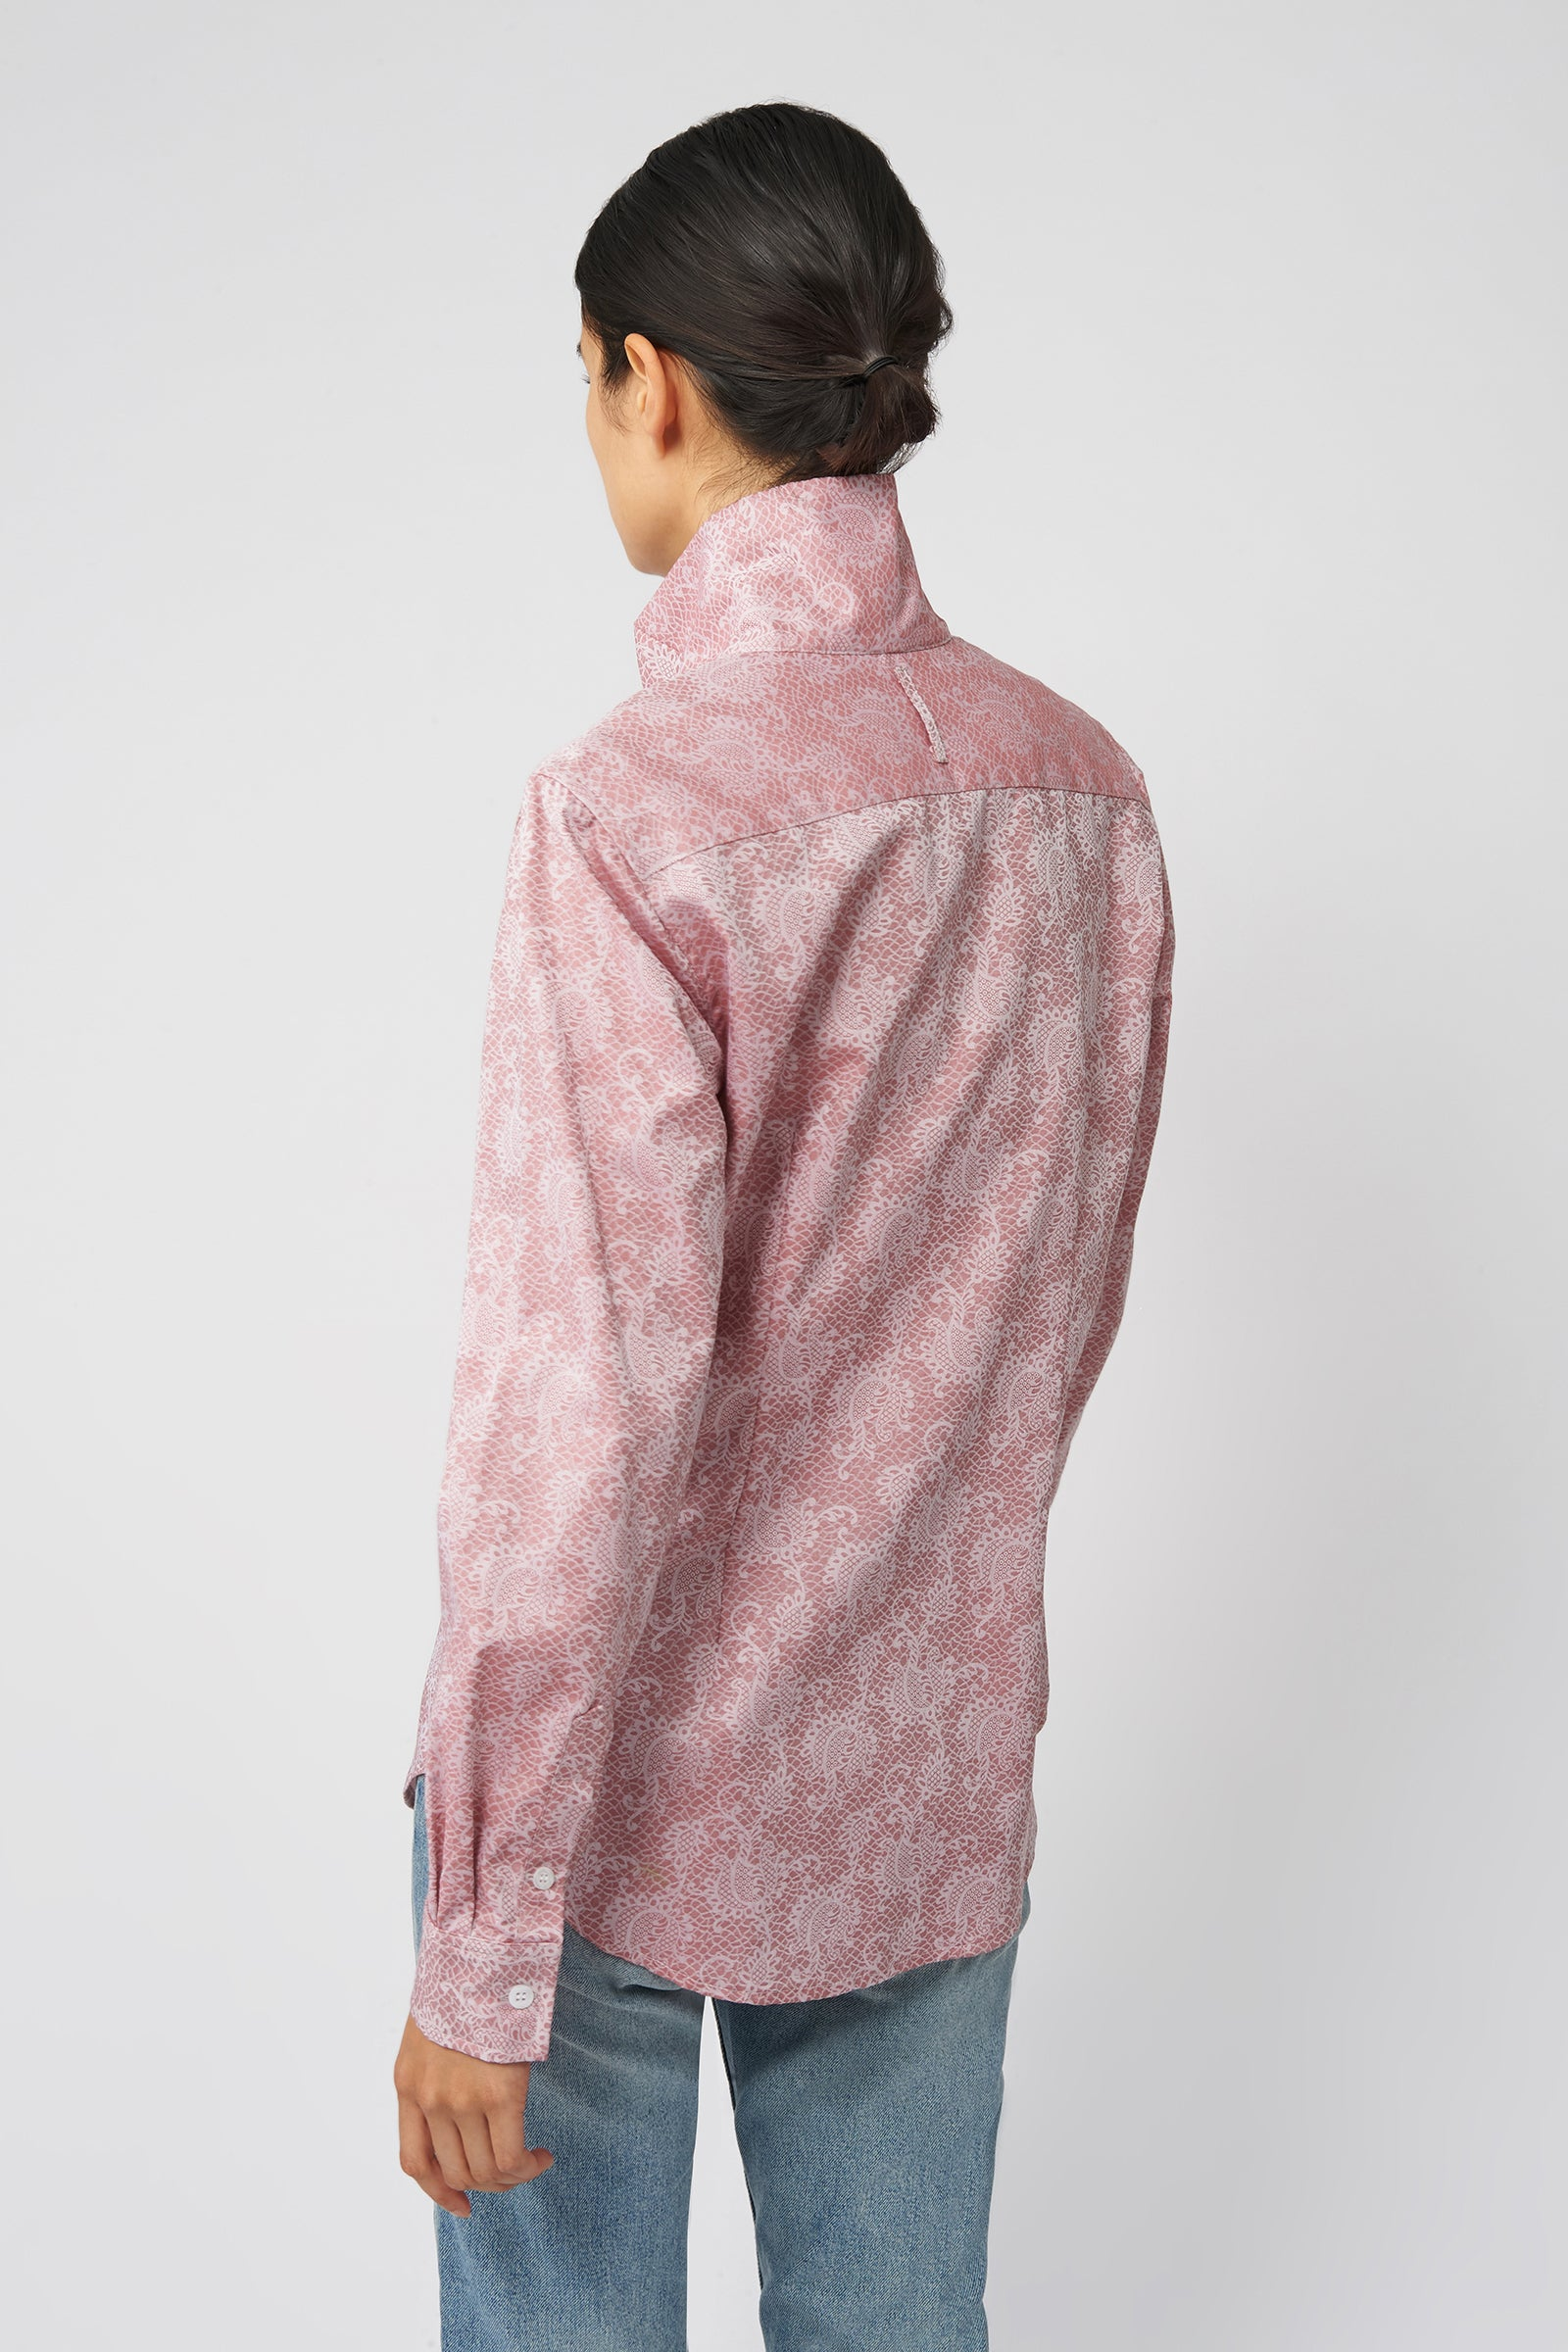 Kal Rieman Ginna Tailored Shirt in Rose Floral Jacquard on Model Front Detail